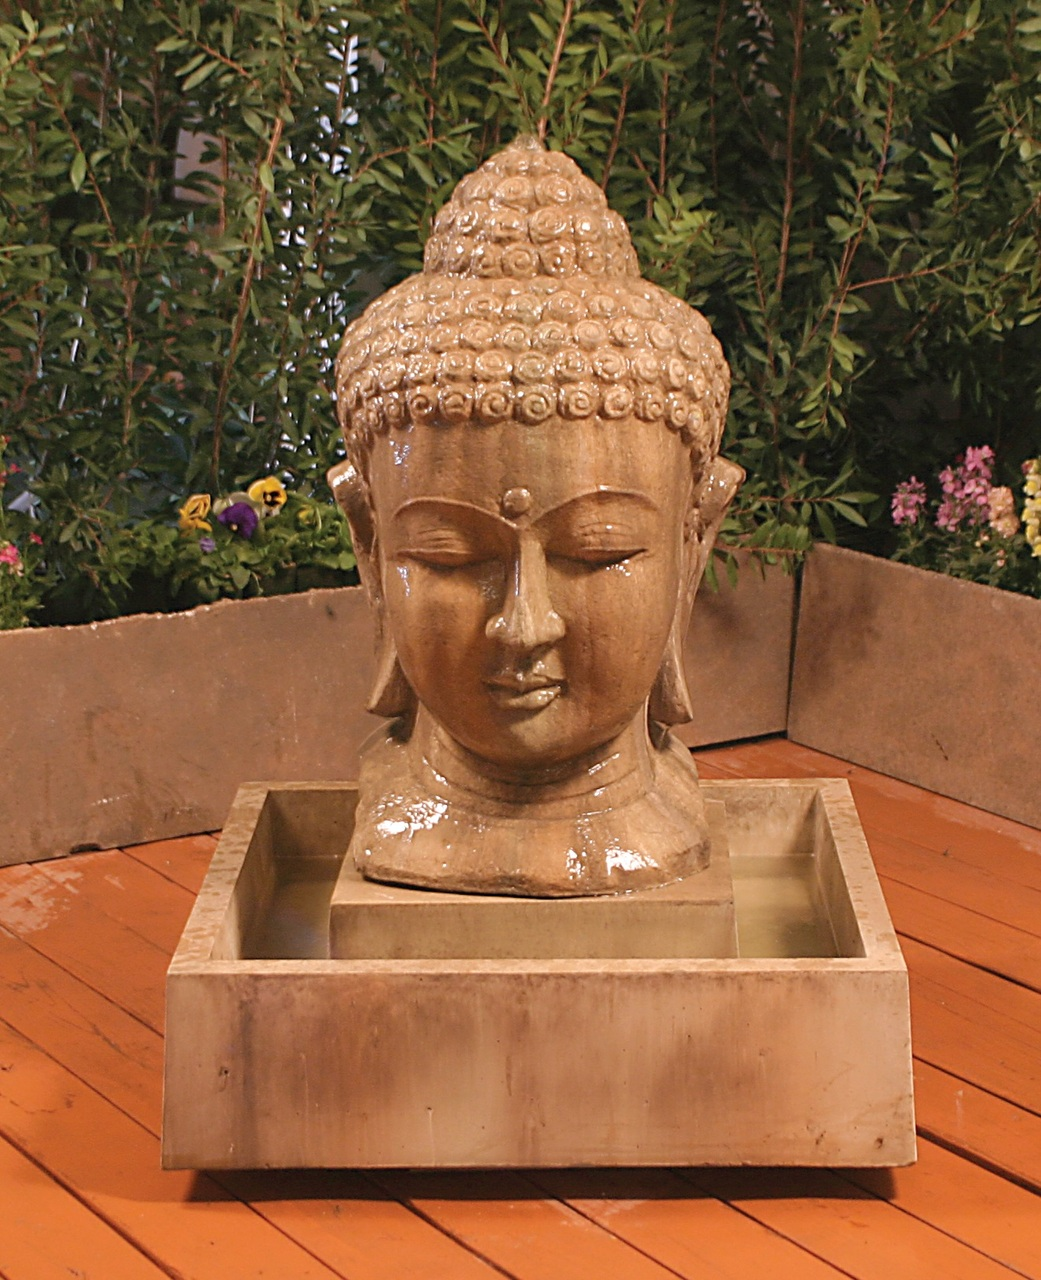 fountain run buddhist dating site Search the history of over 325 billion web pages on the internet.